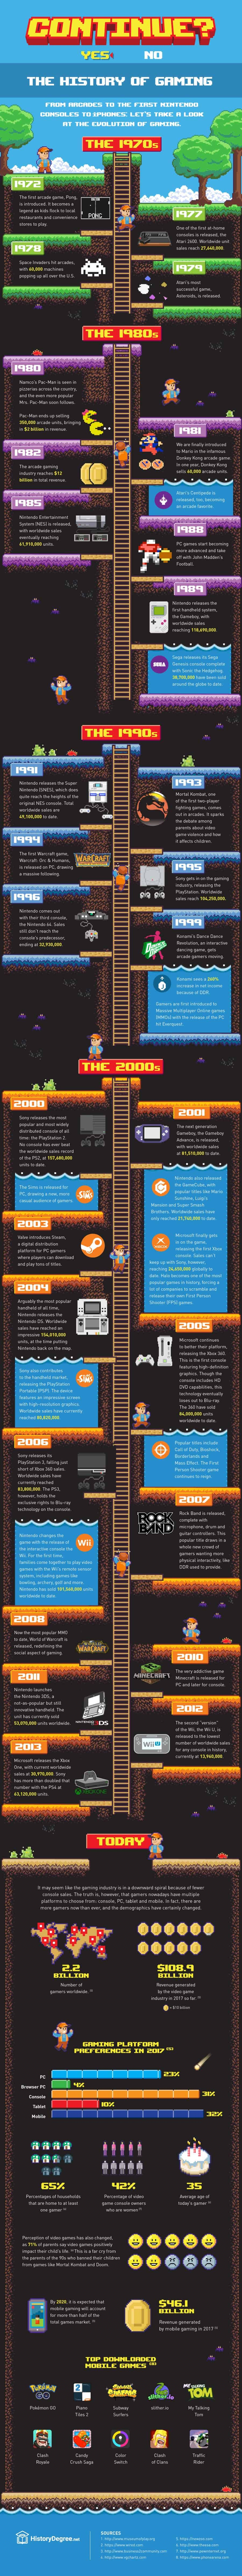 The Evolution Of Video Games In One Epic Timeline | Daily